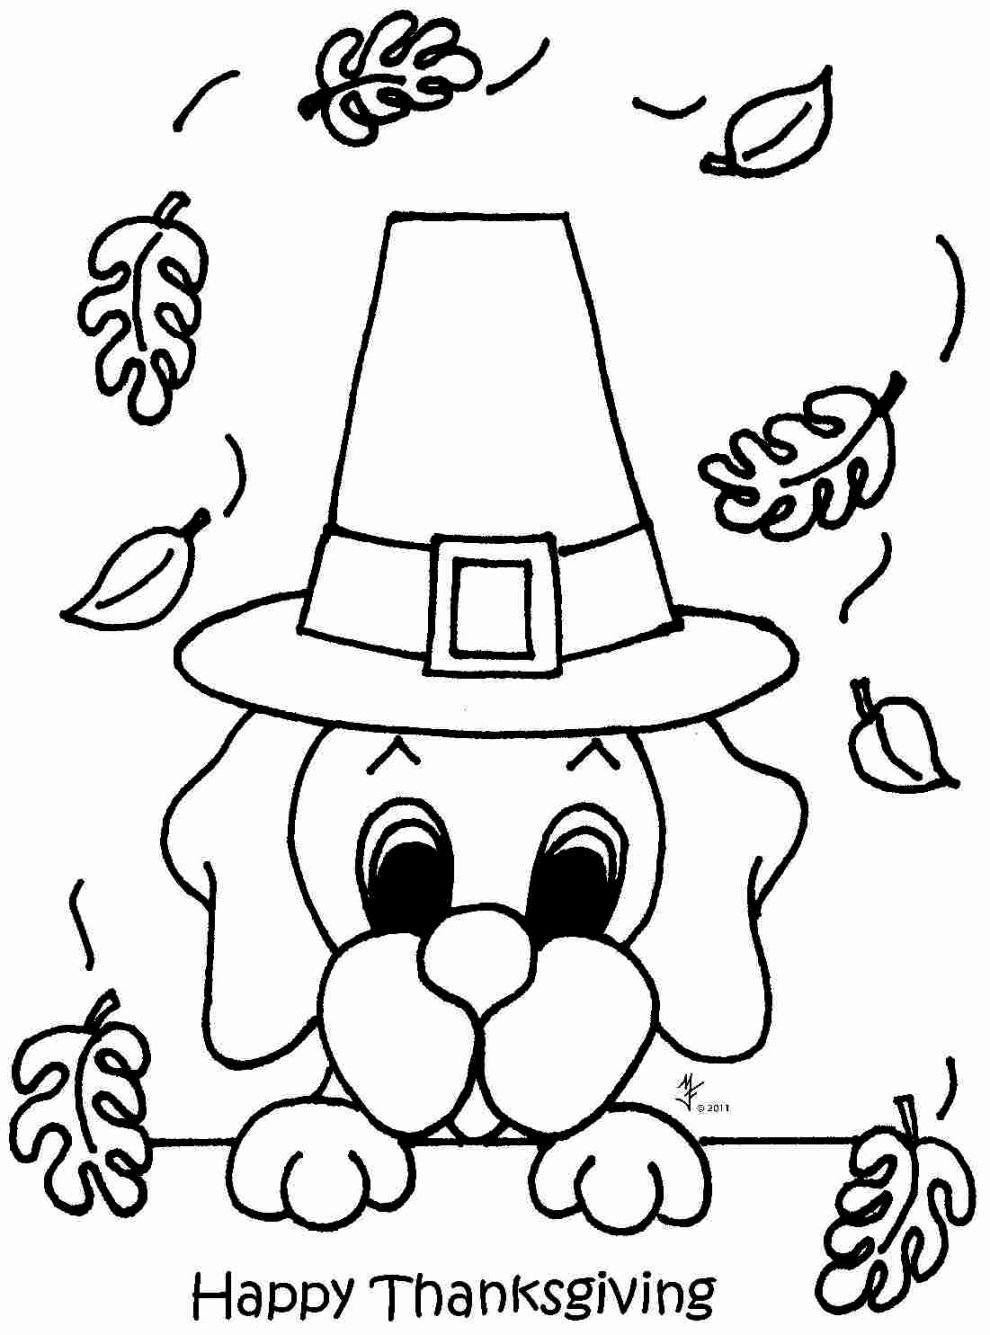 T For Tree Coloring Page New Elegant Free Thanksgiving Coloring